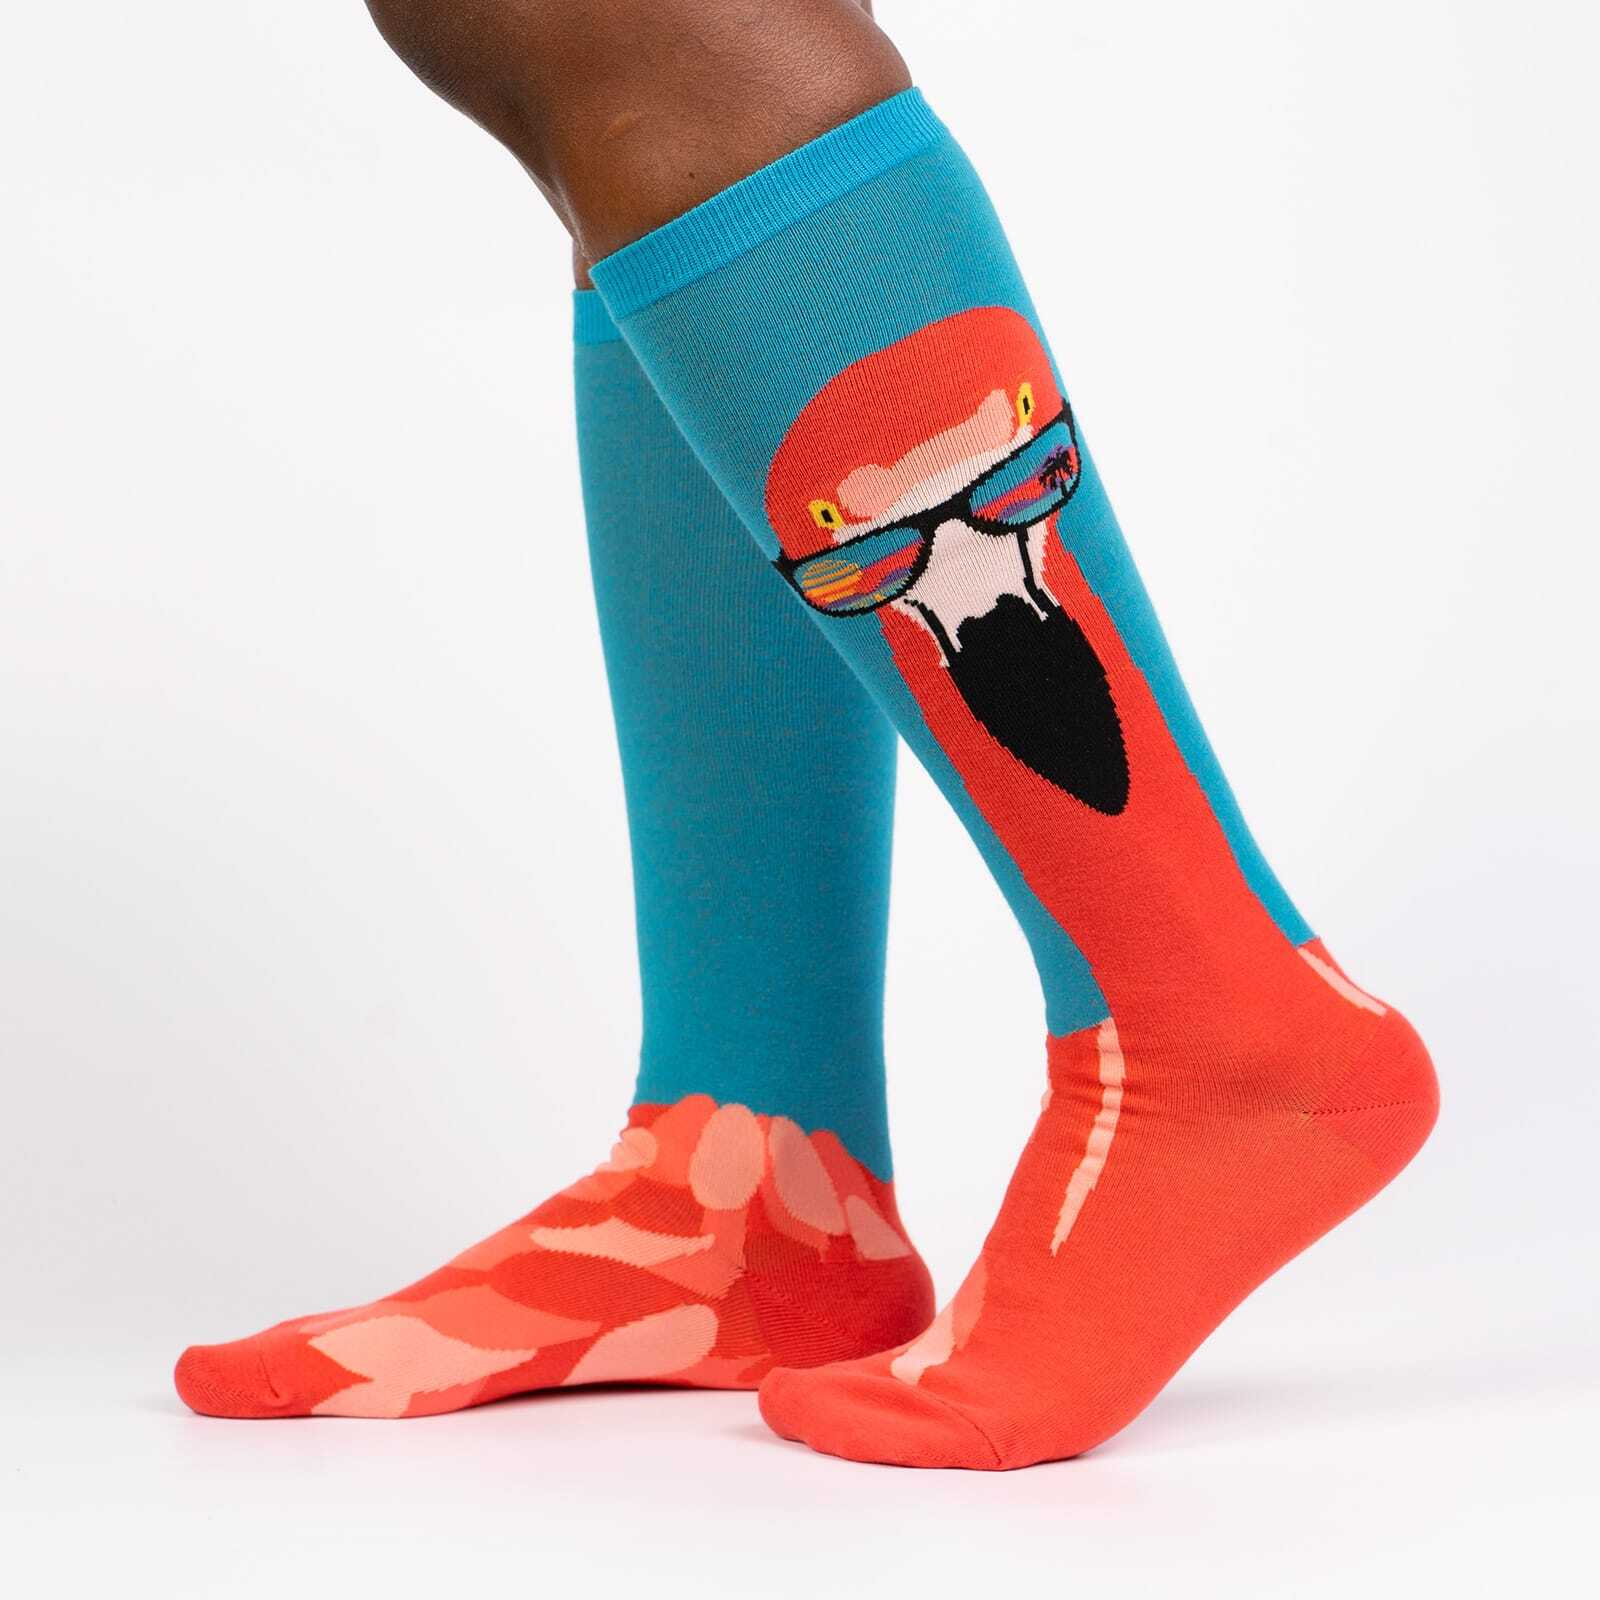 Ready to Flamingle - Flamingo Fun Animal Knee High Socks Unisex - Men's and Women's in Blue